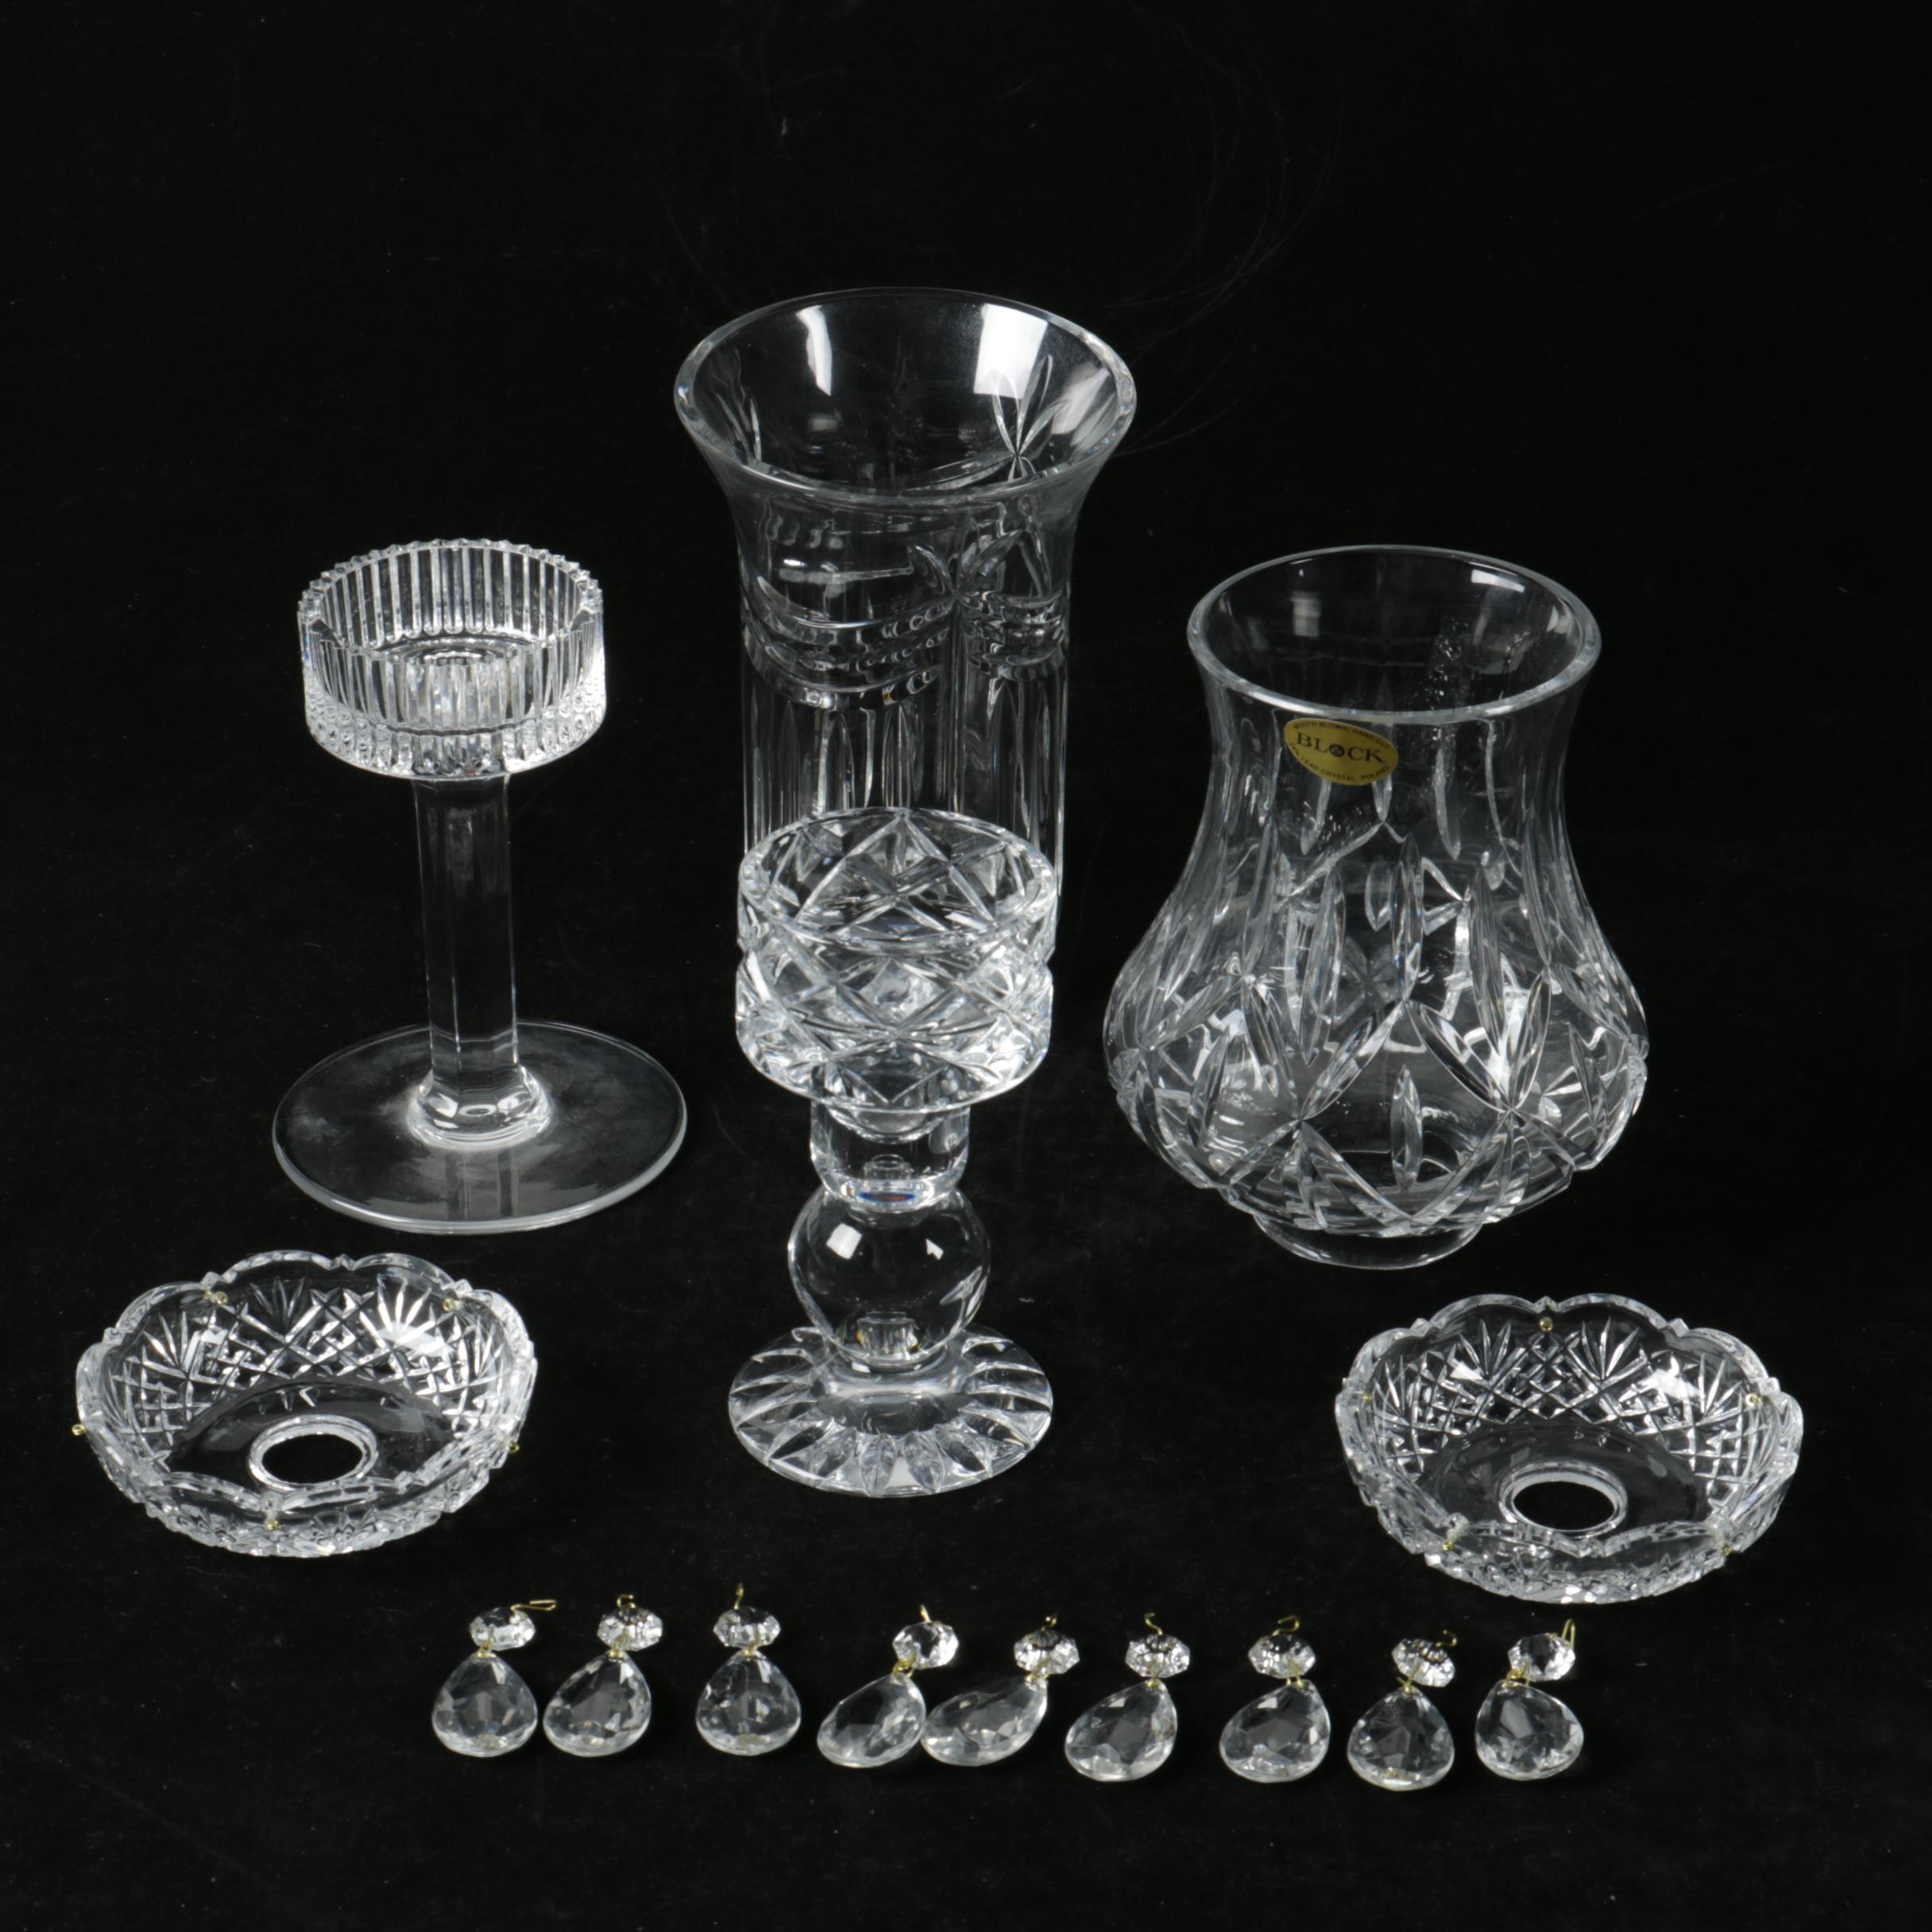 Crystal Candleholders with Shades including Block